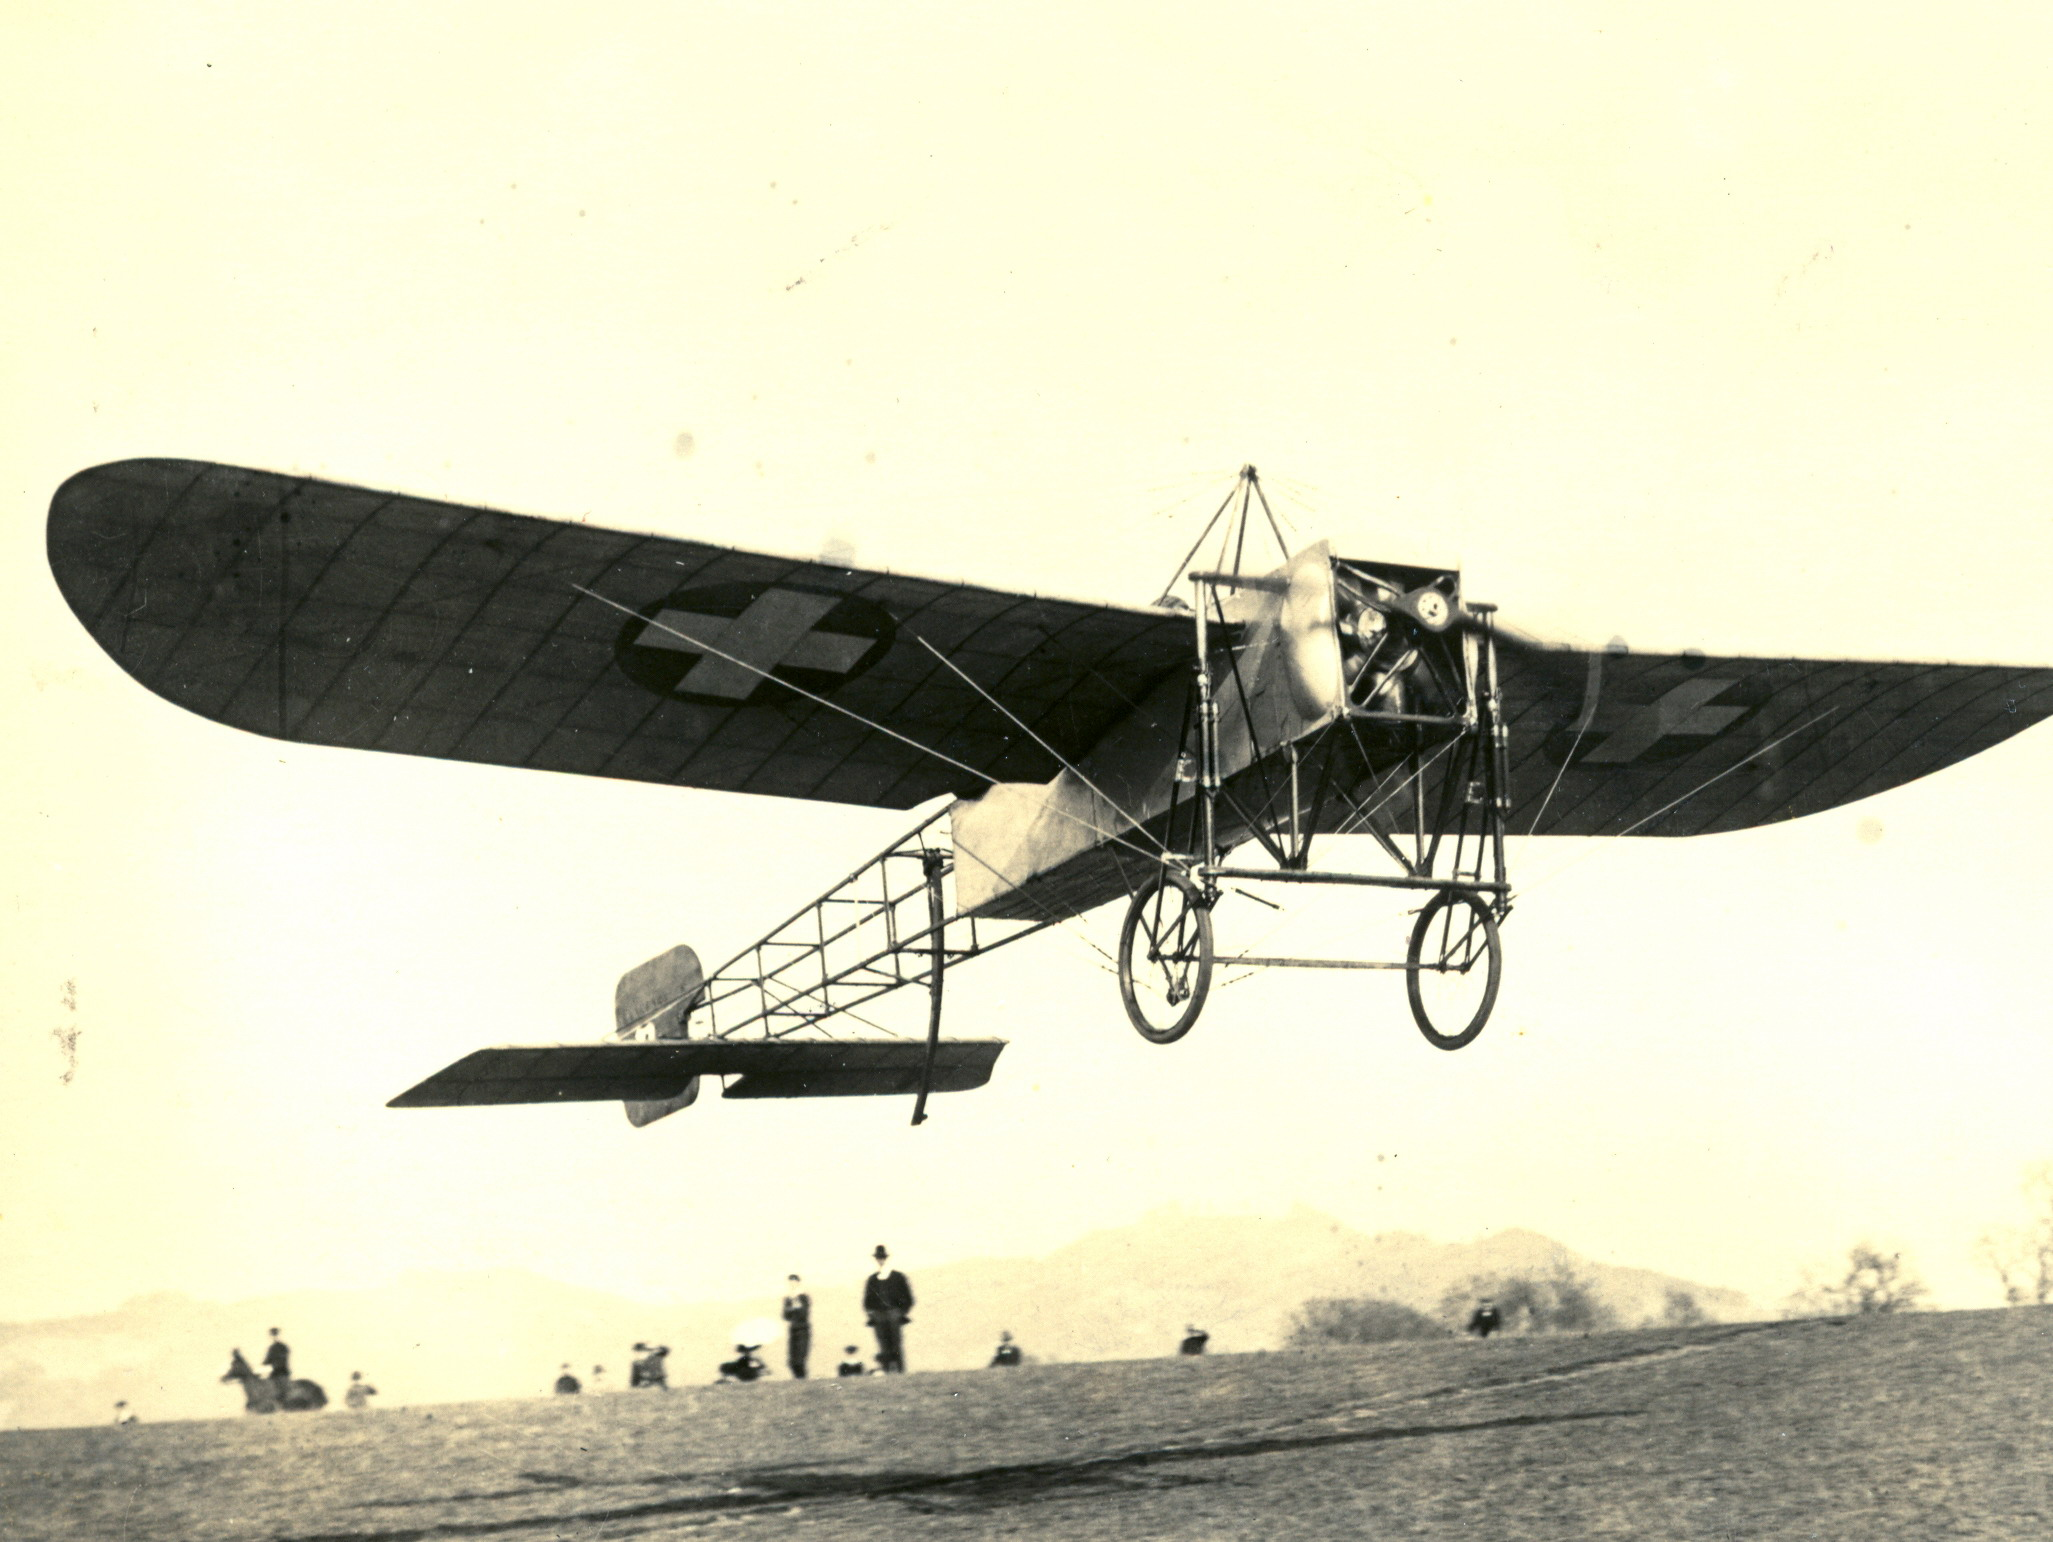 Oskar Bider starting from Bern to his flight over the Alps, showing the pyramidal dorsal cabane of later Bleriot XI examples. Photo taken on May 13, 1913.